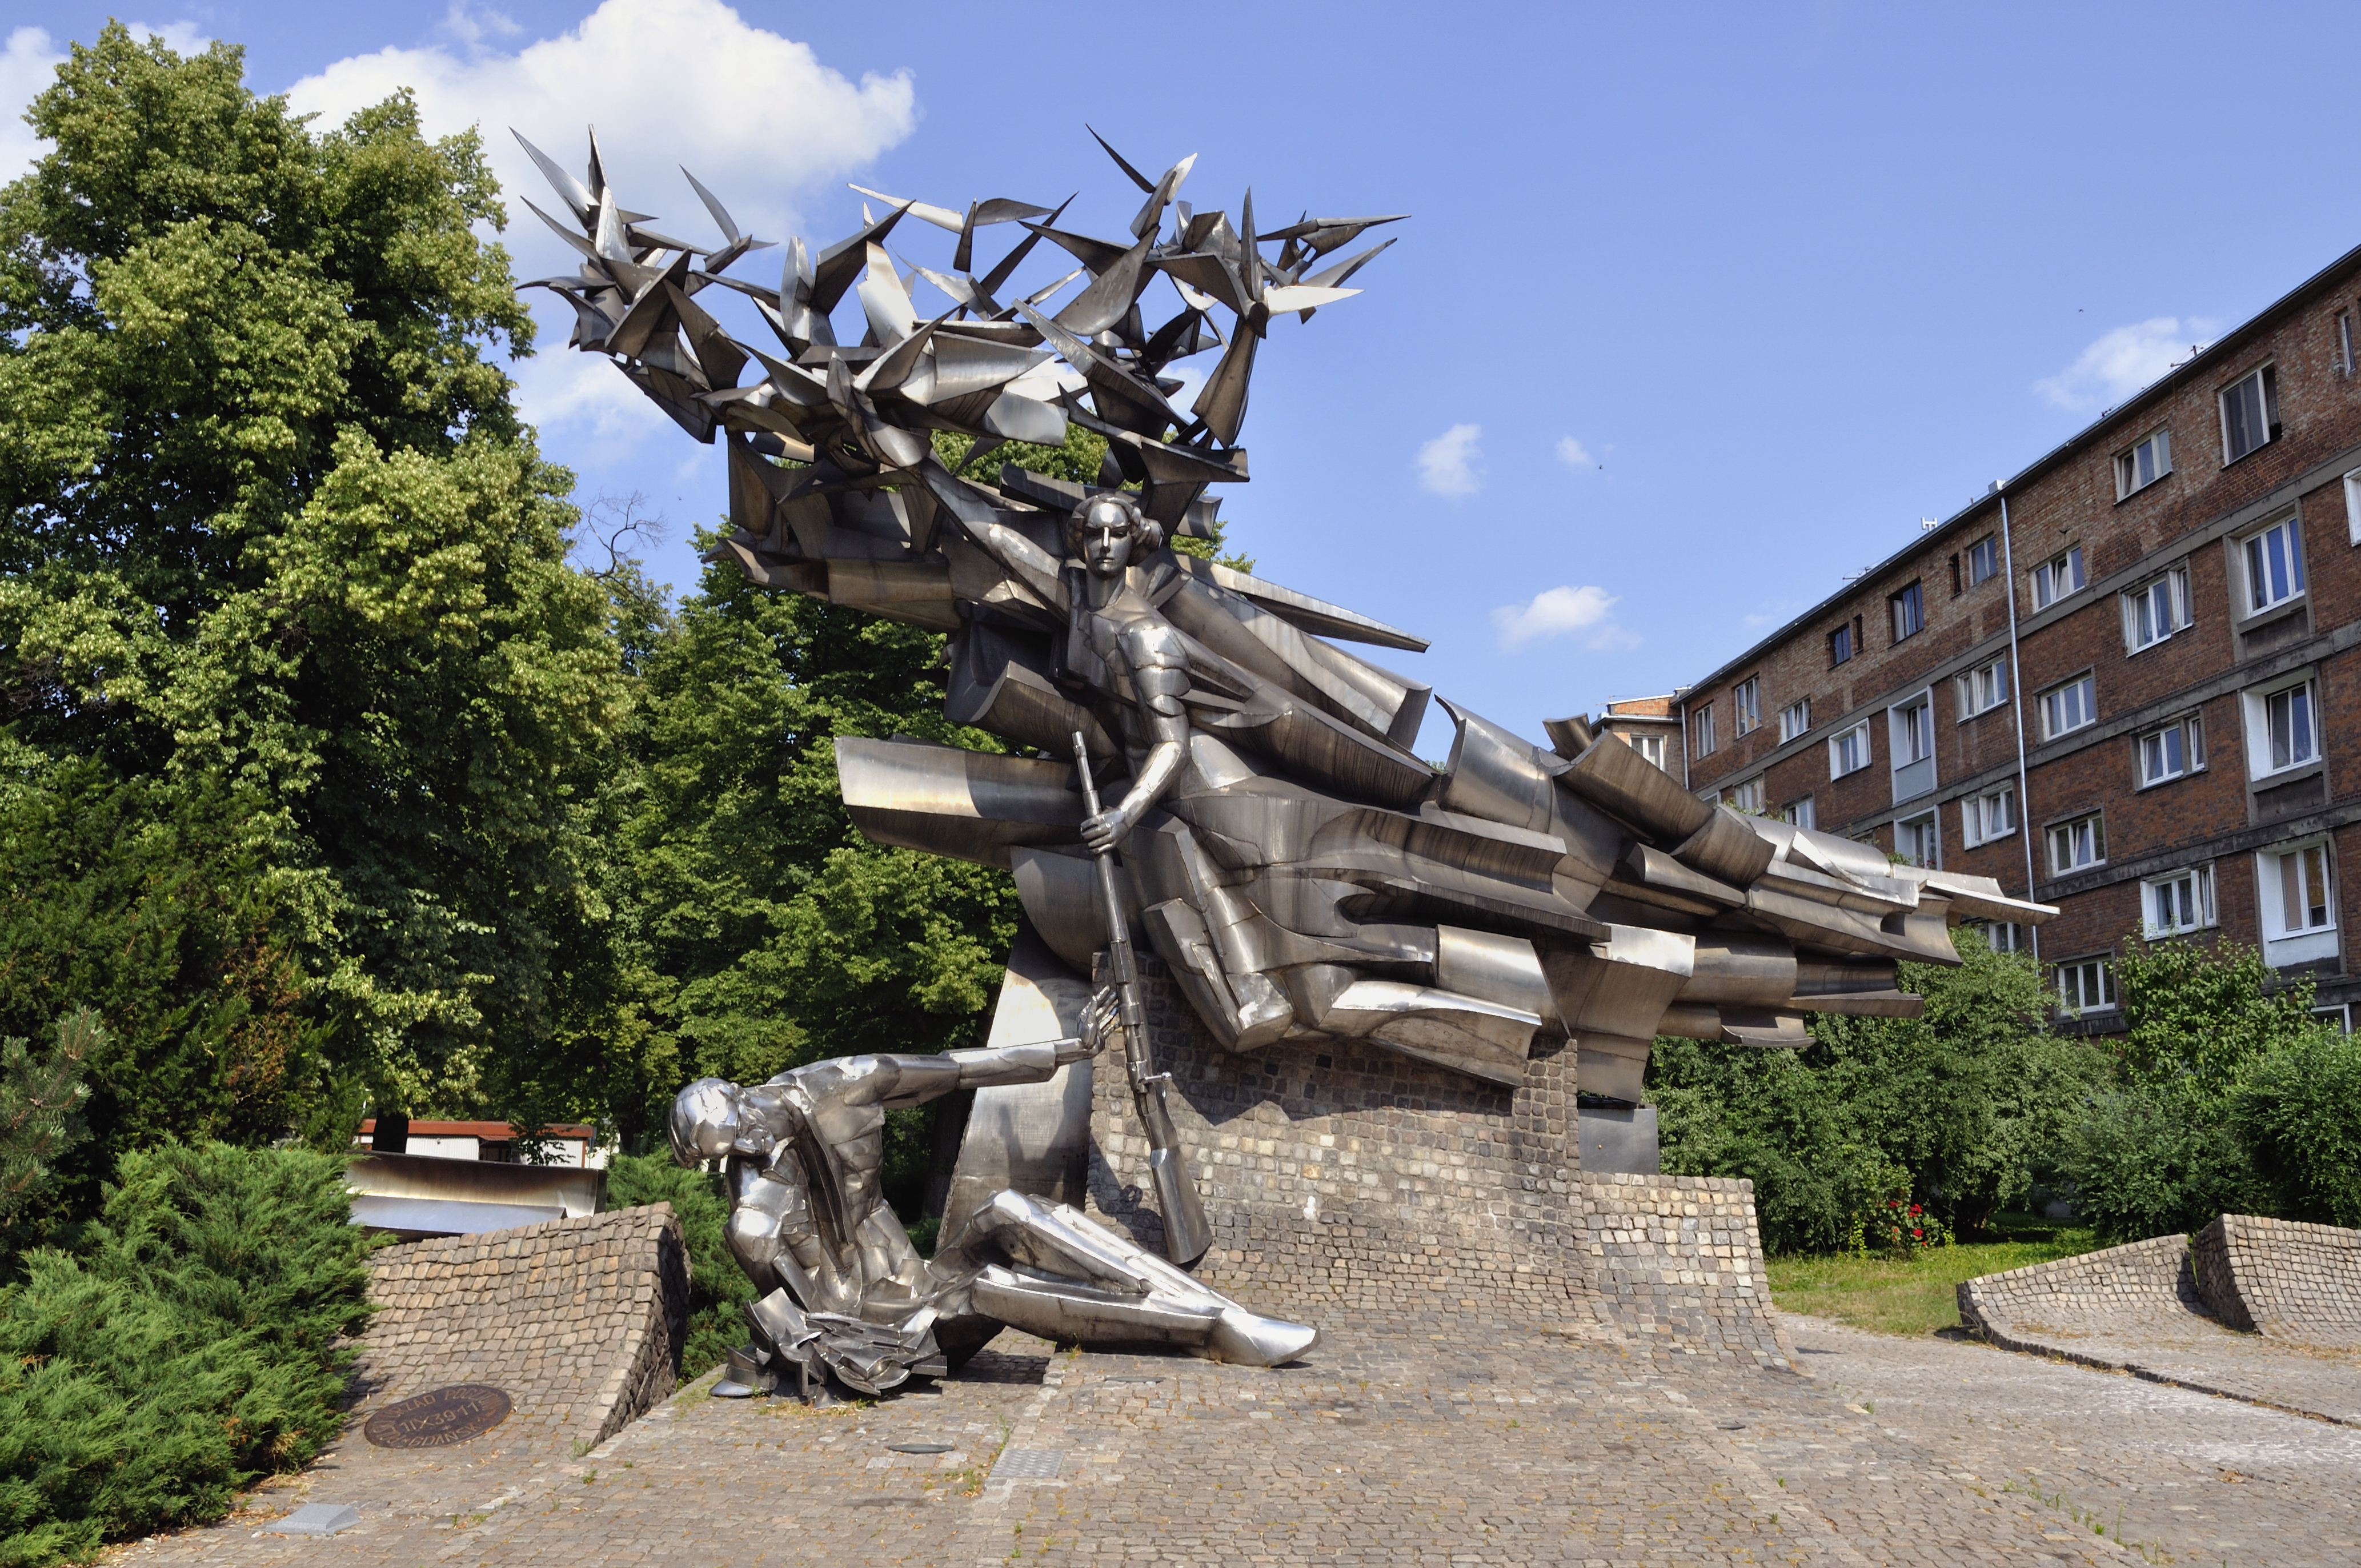 Monument to the Defenders of the Polish Post Office in Gdańsk. Photo taken on July 15, 2010.